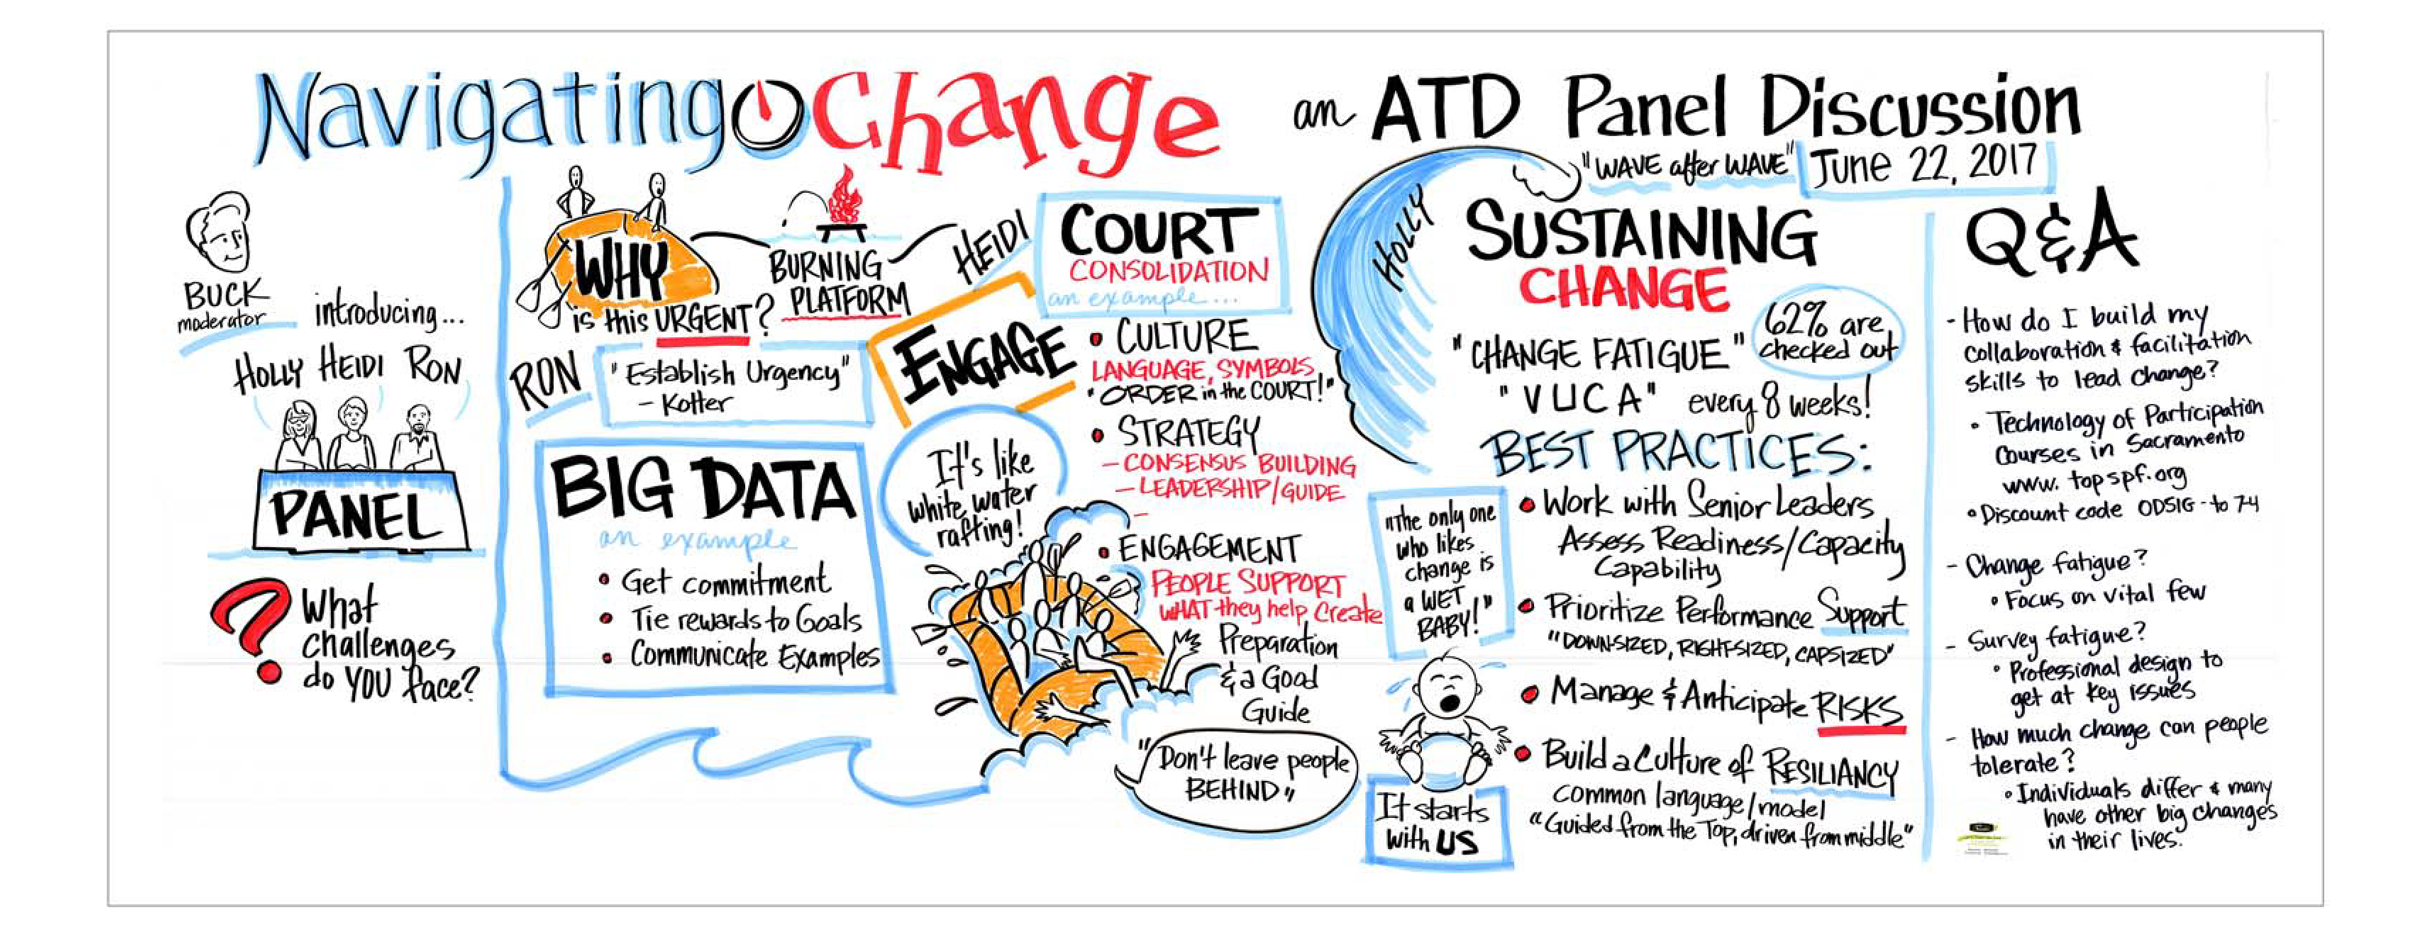 ATD Waves of Change